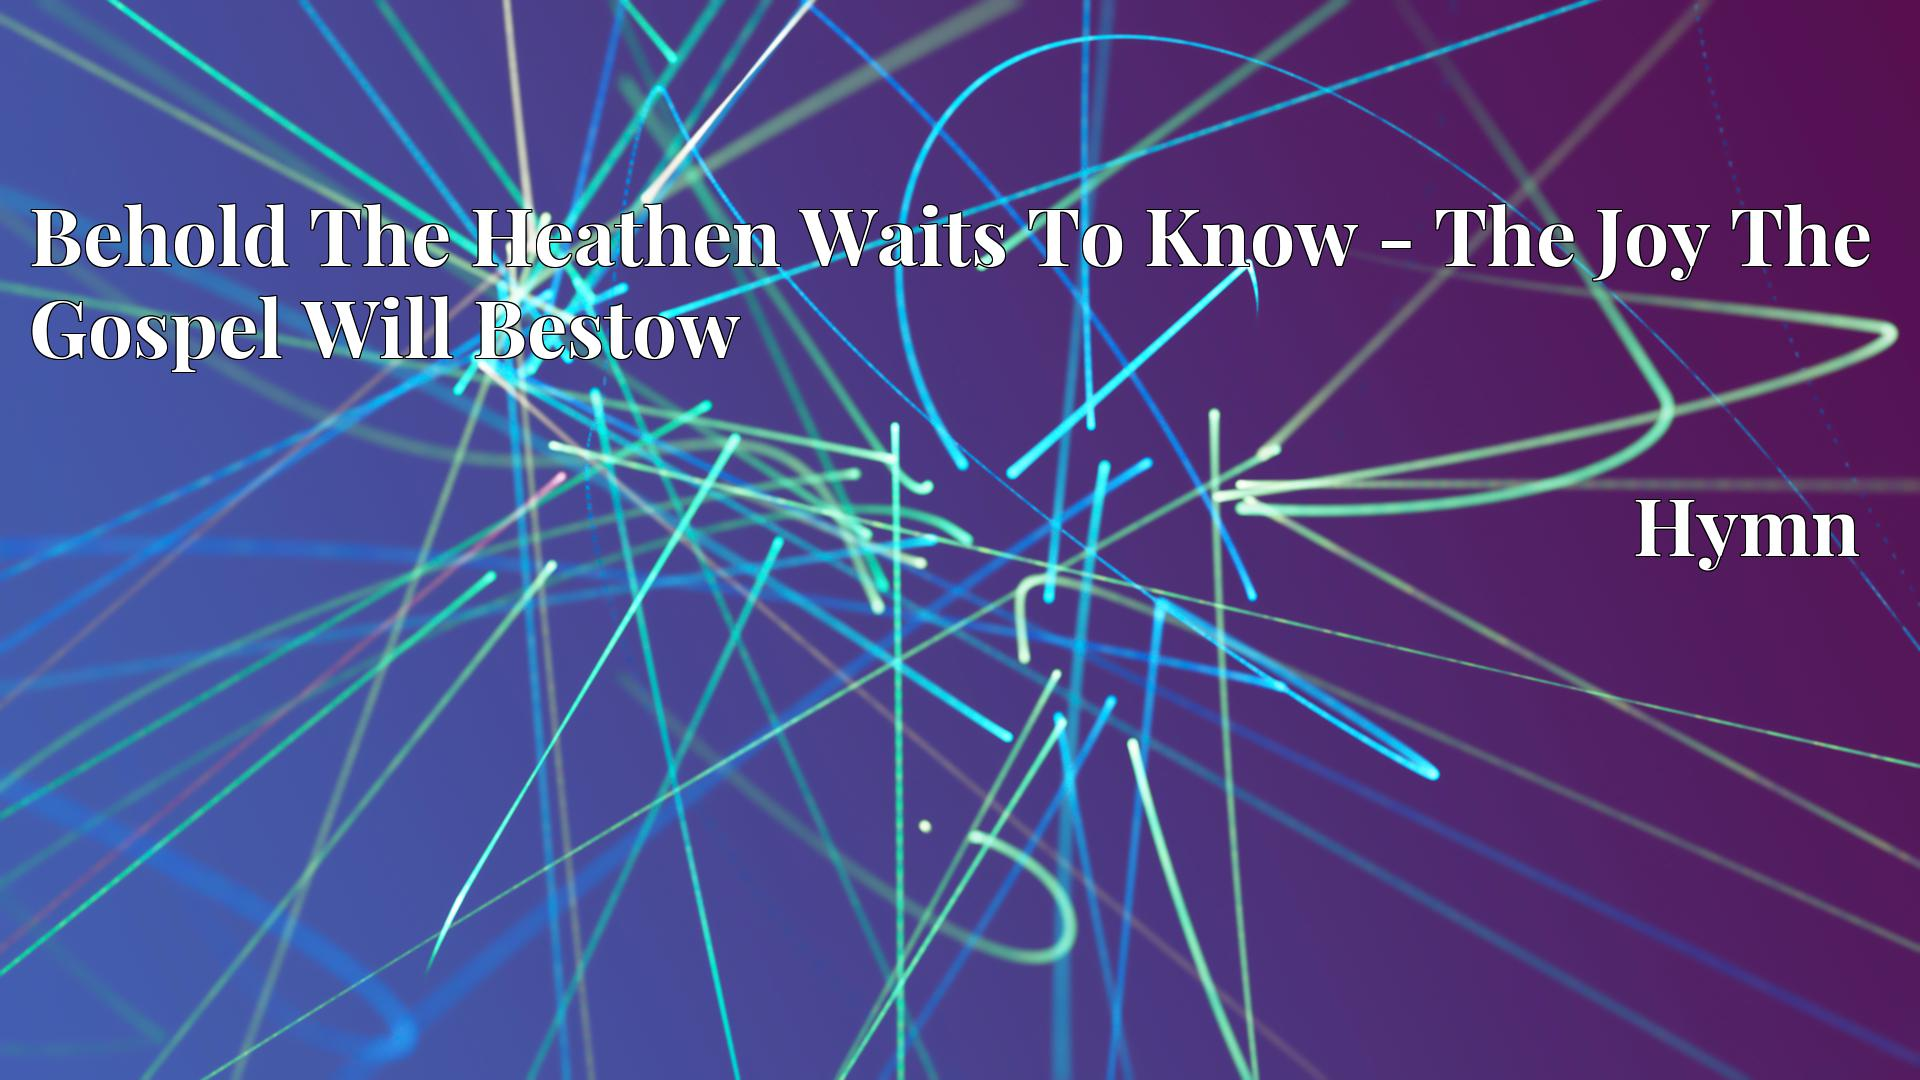 Behold The Heathen Waits To Know - The Joy The Gospel Will Bestow - Hymn